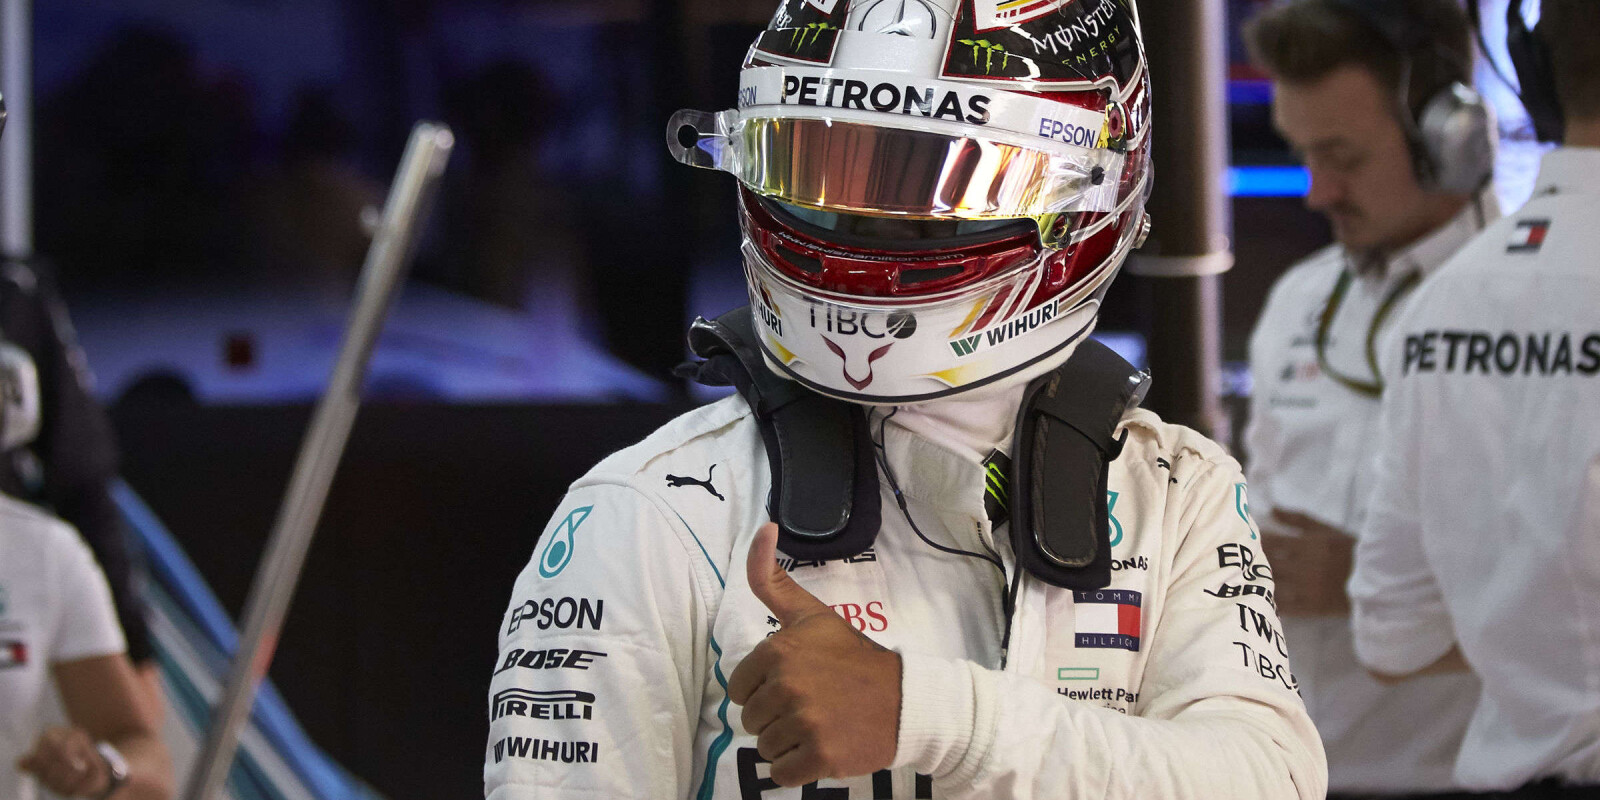 Friday images from the 2018 Russian Grand Prix